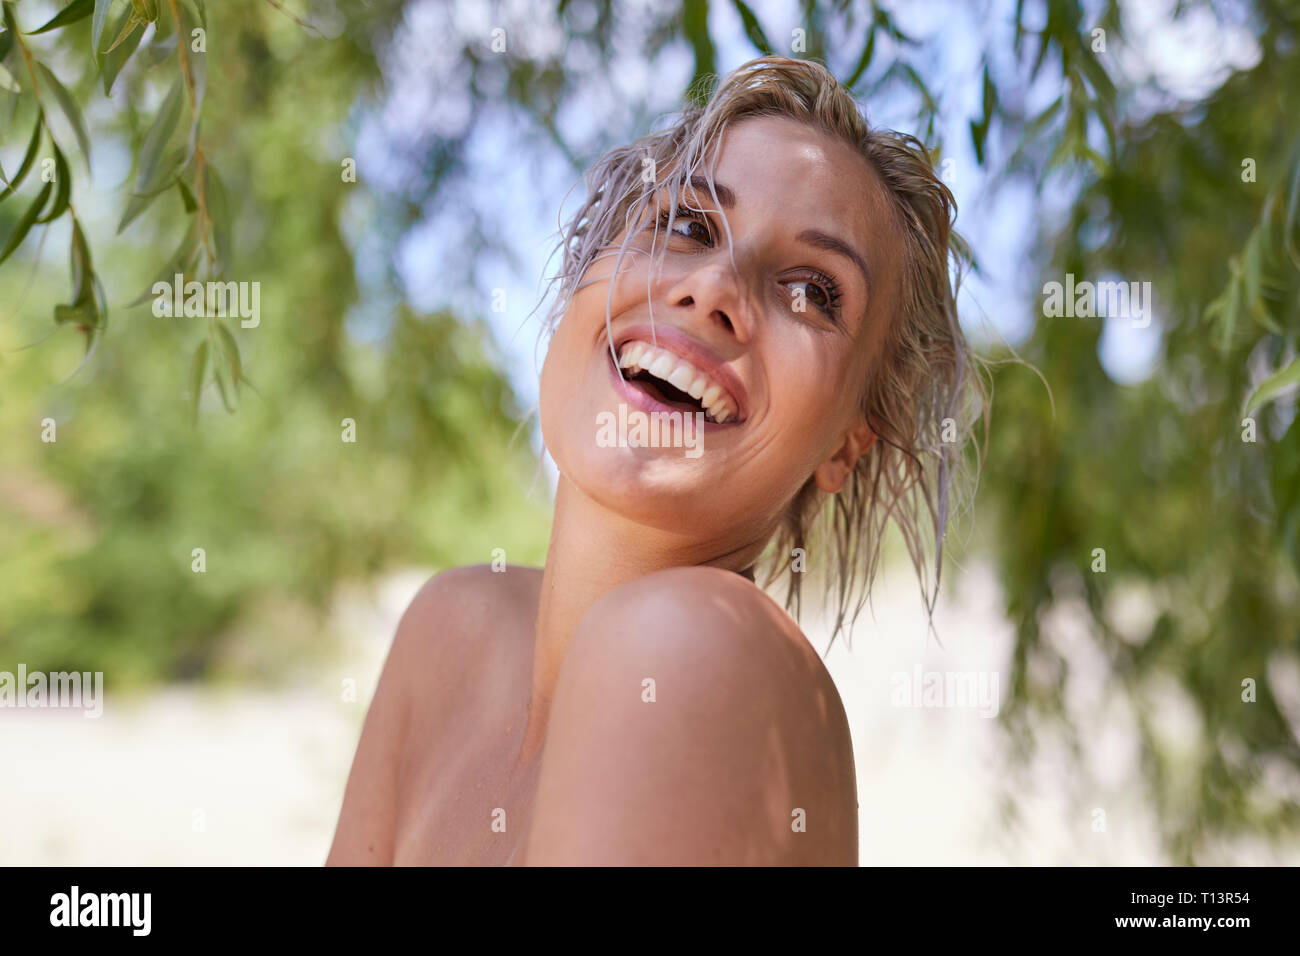 Portrait of a beautiful woman with wet hair and bare shoulders, laughing - Stock Image